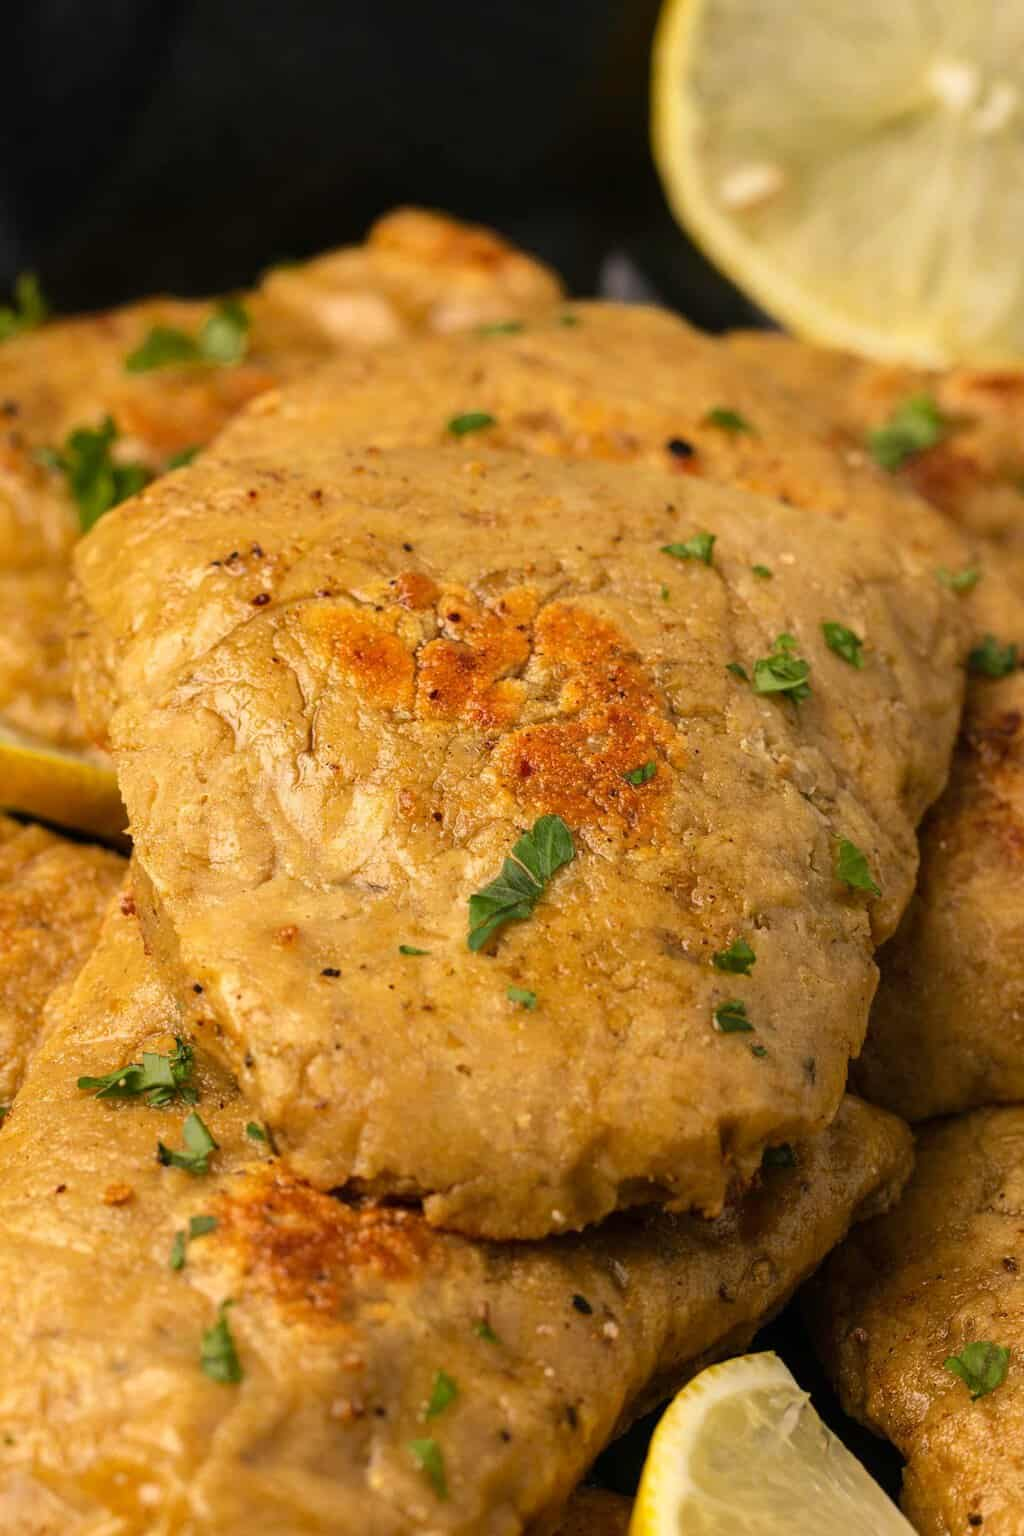 Vegan chicken fillets topped with chopped parsley.